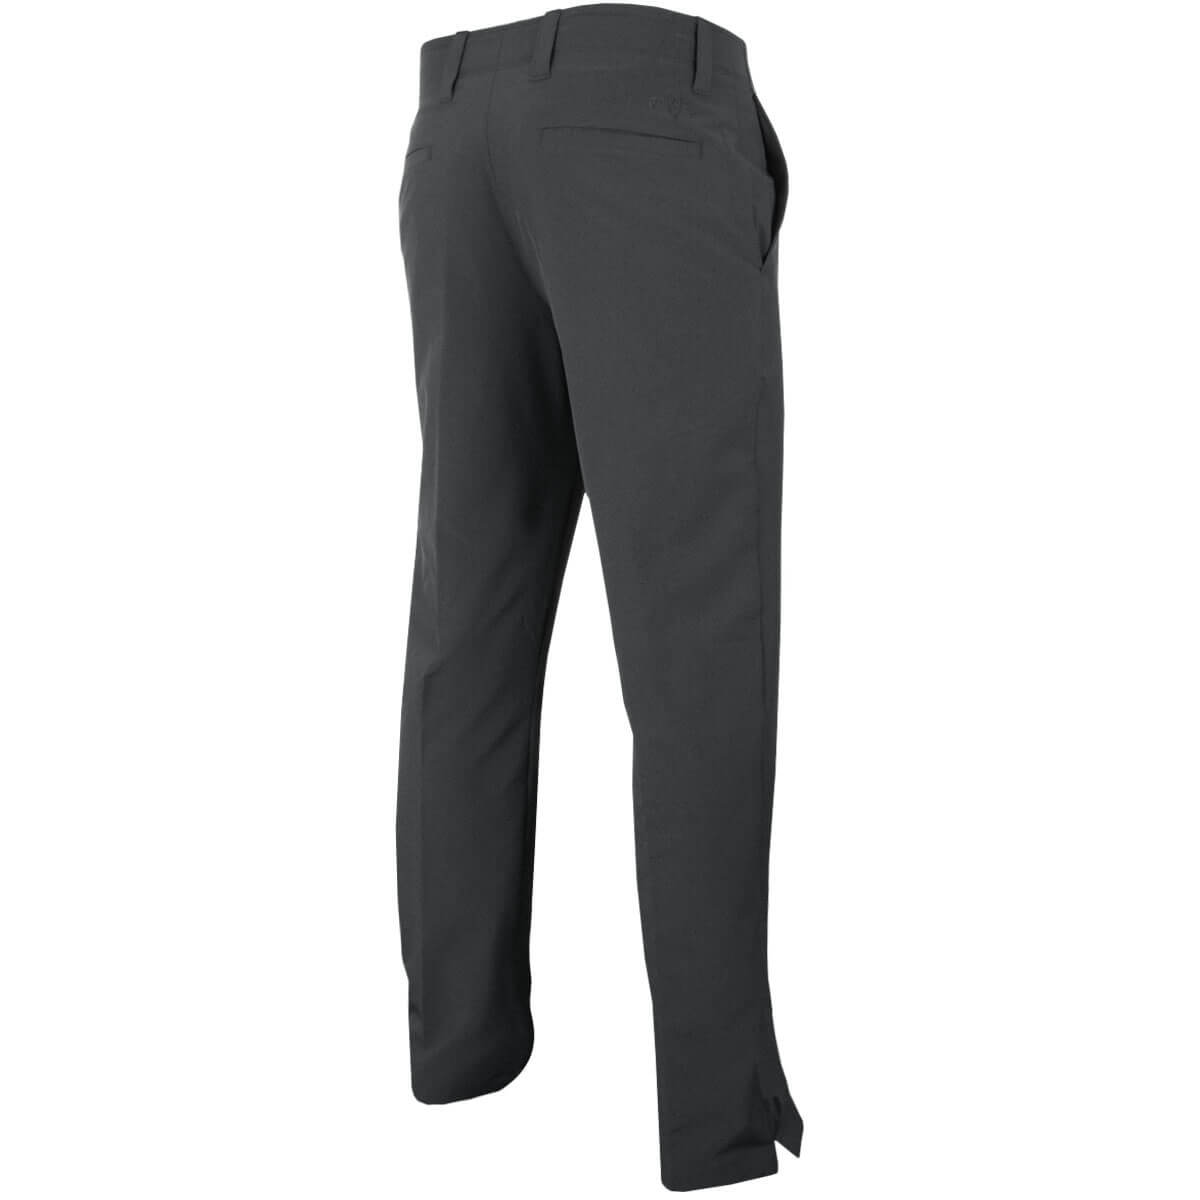 Callaway-Mens-2019-Chev-Tech-II-Lightweight-Stretch-Golf-Trousers-28-OFF-RRP thumbnail 3